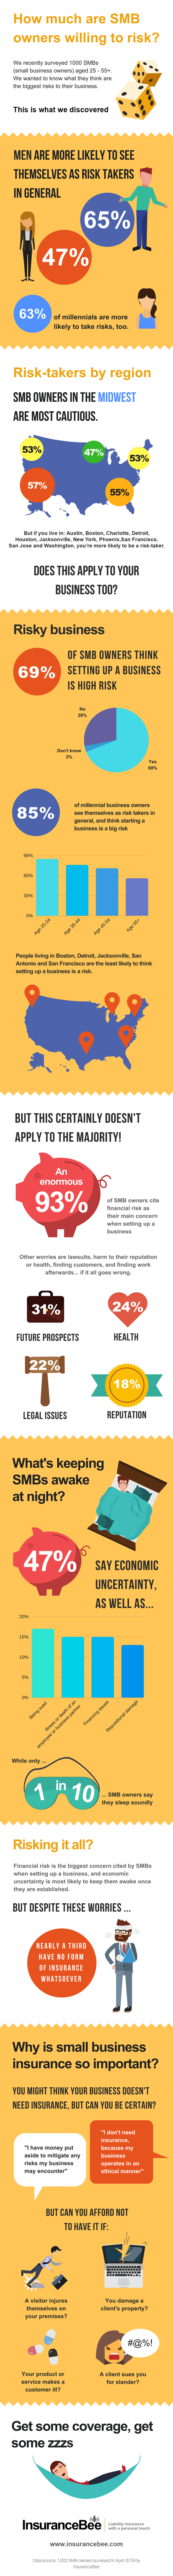 Small Business Risks: Trade War Worries Dampening the Small Business Spirit Slightly